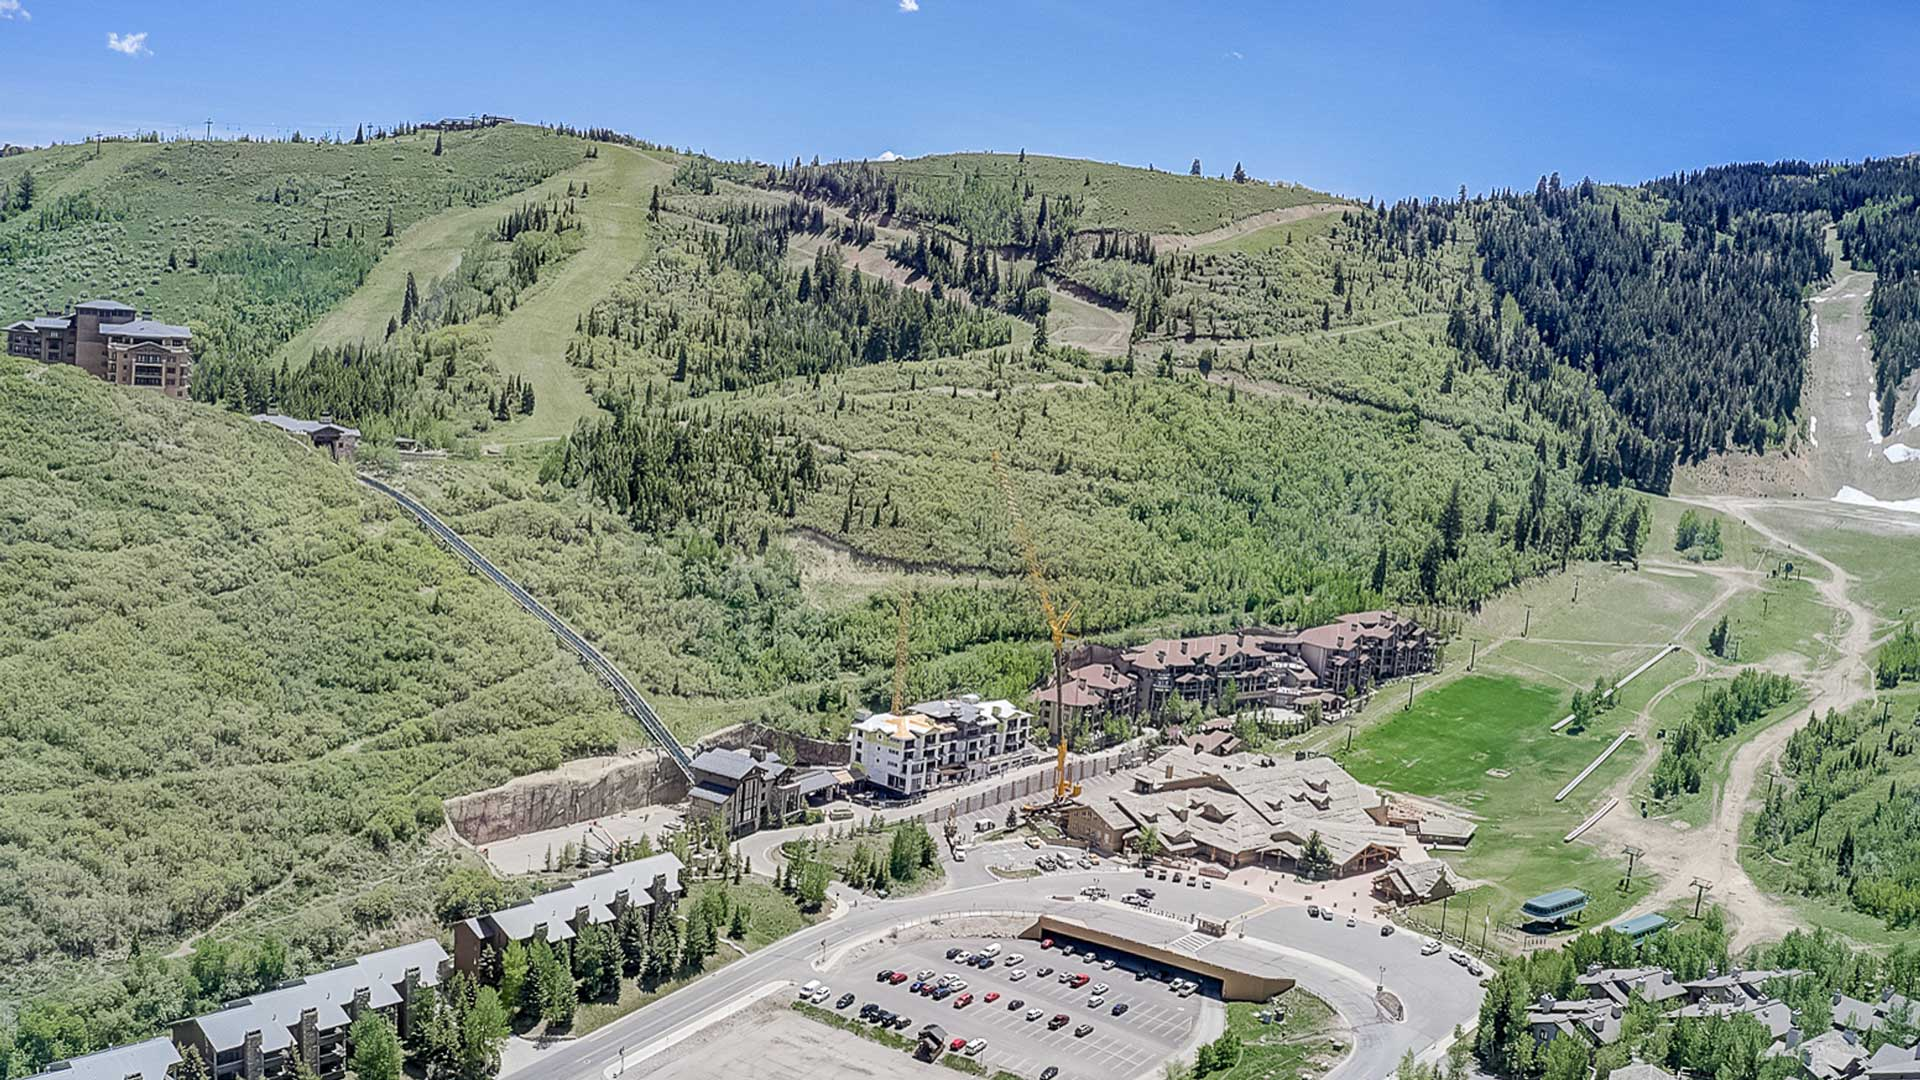 Construction Progress, The Residences at The St. Regis Deer Valley | Snow Park, June 3, 2020